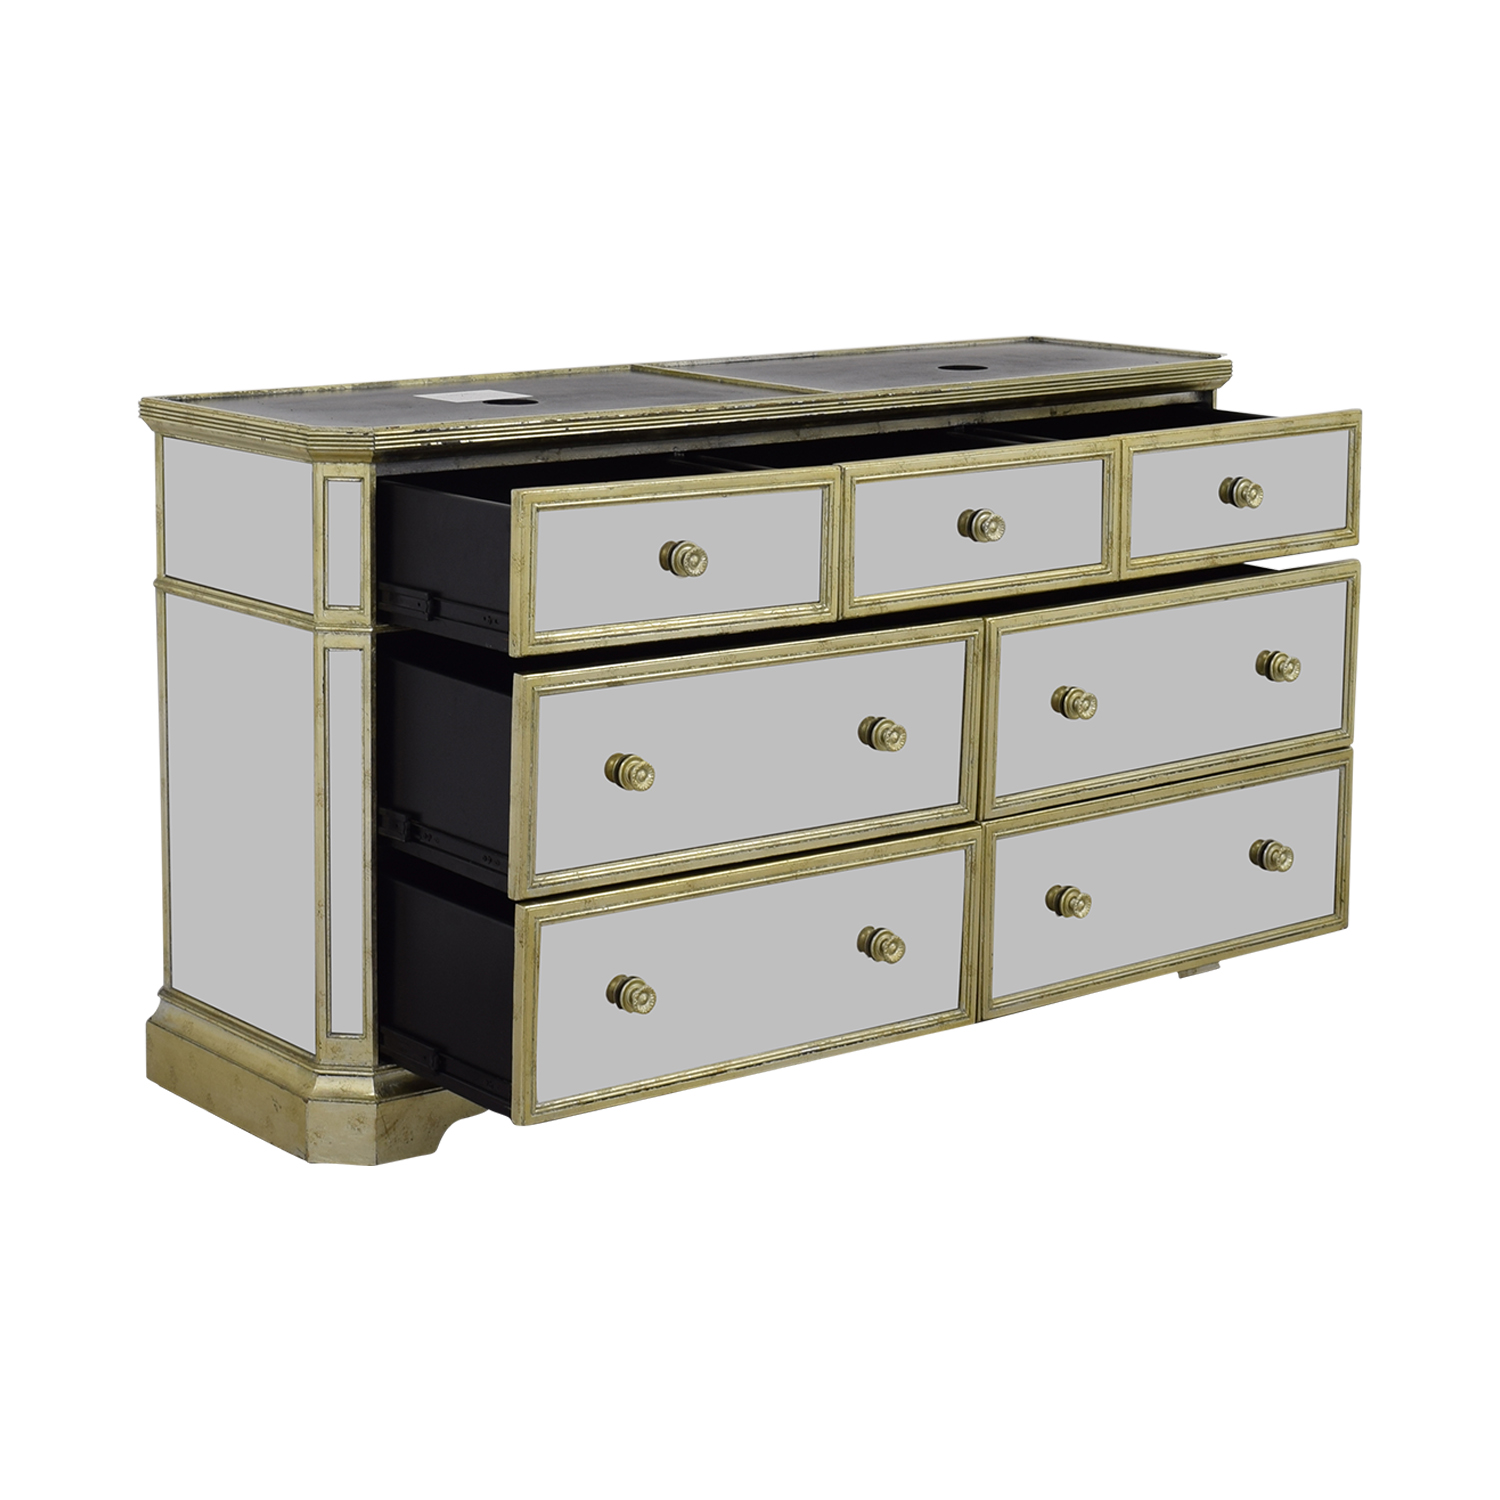 Marais Marais Seven-Drawer Mirrored Dresser nyc